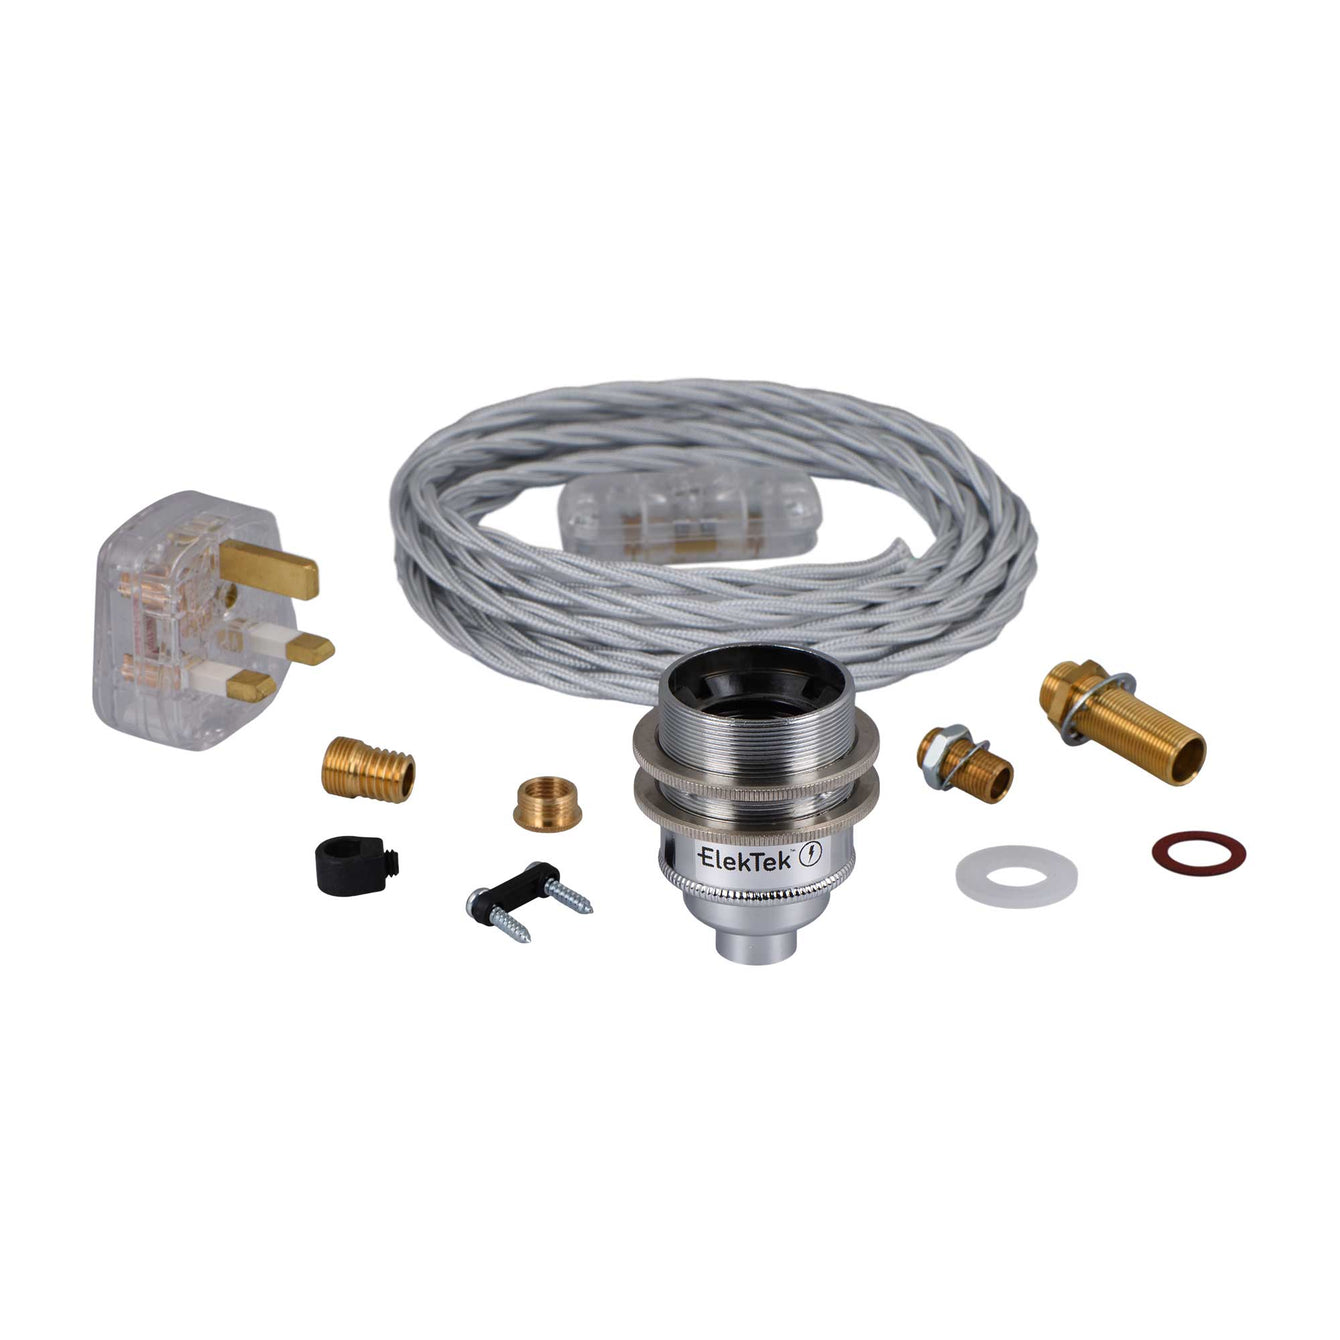 ElekTek Premium Lamp Kit Chrome Shade Ring E27 Lamp Holder with Flex, In Line Switch and 3A UK Plug Twisted